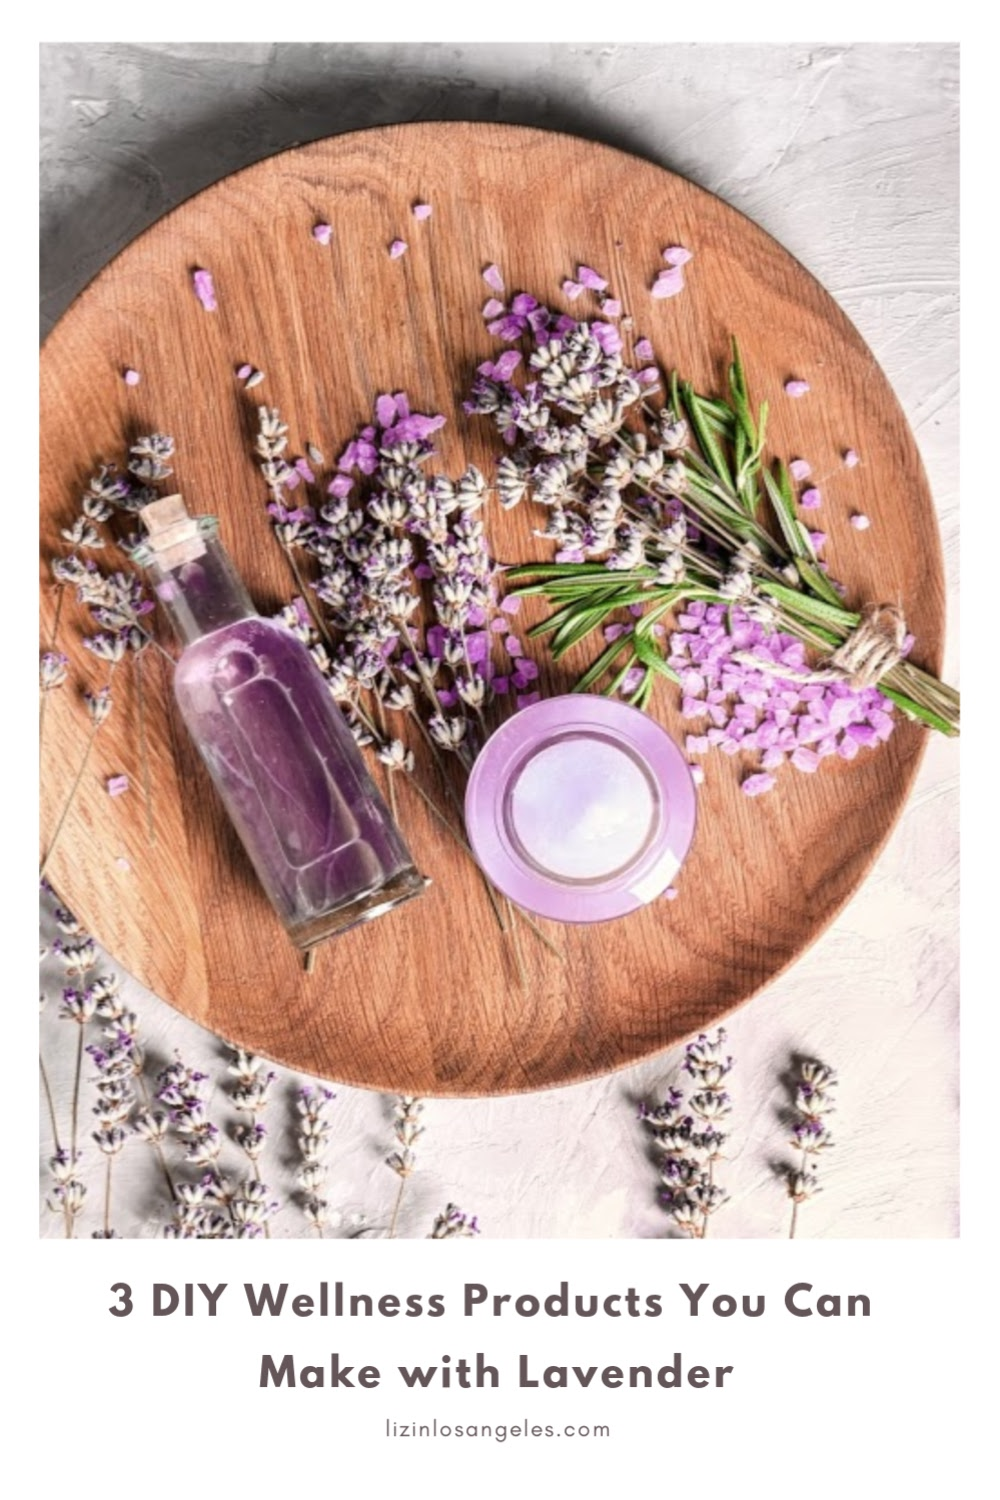 Lavender Uses: 5 DIY Wellness Products You Can Make with Lavender, a blog post by Liz in Los Angeles, Los Angeles Lifestyle Blogger, an image of lavender i